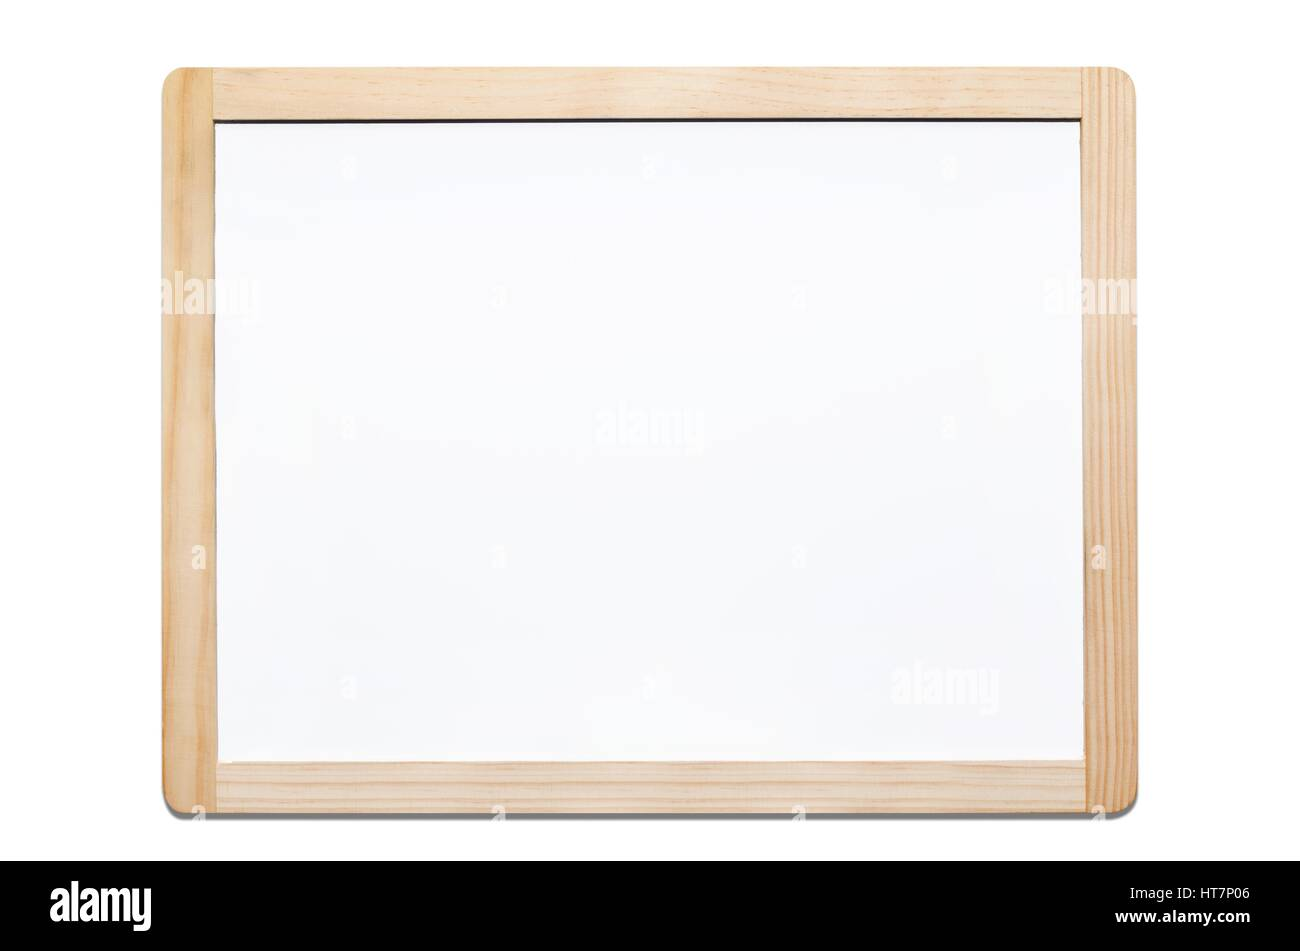 Magnetic whiteboard isolated on white background with wooden frame ...